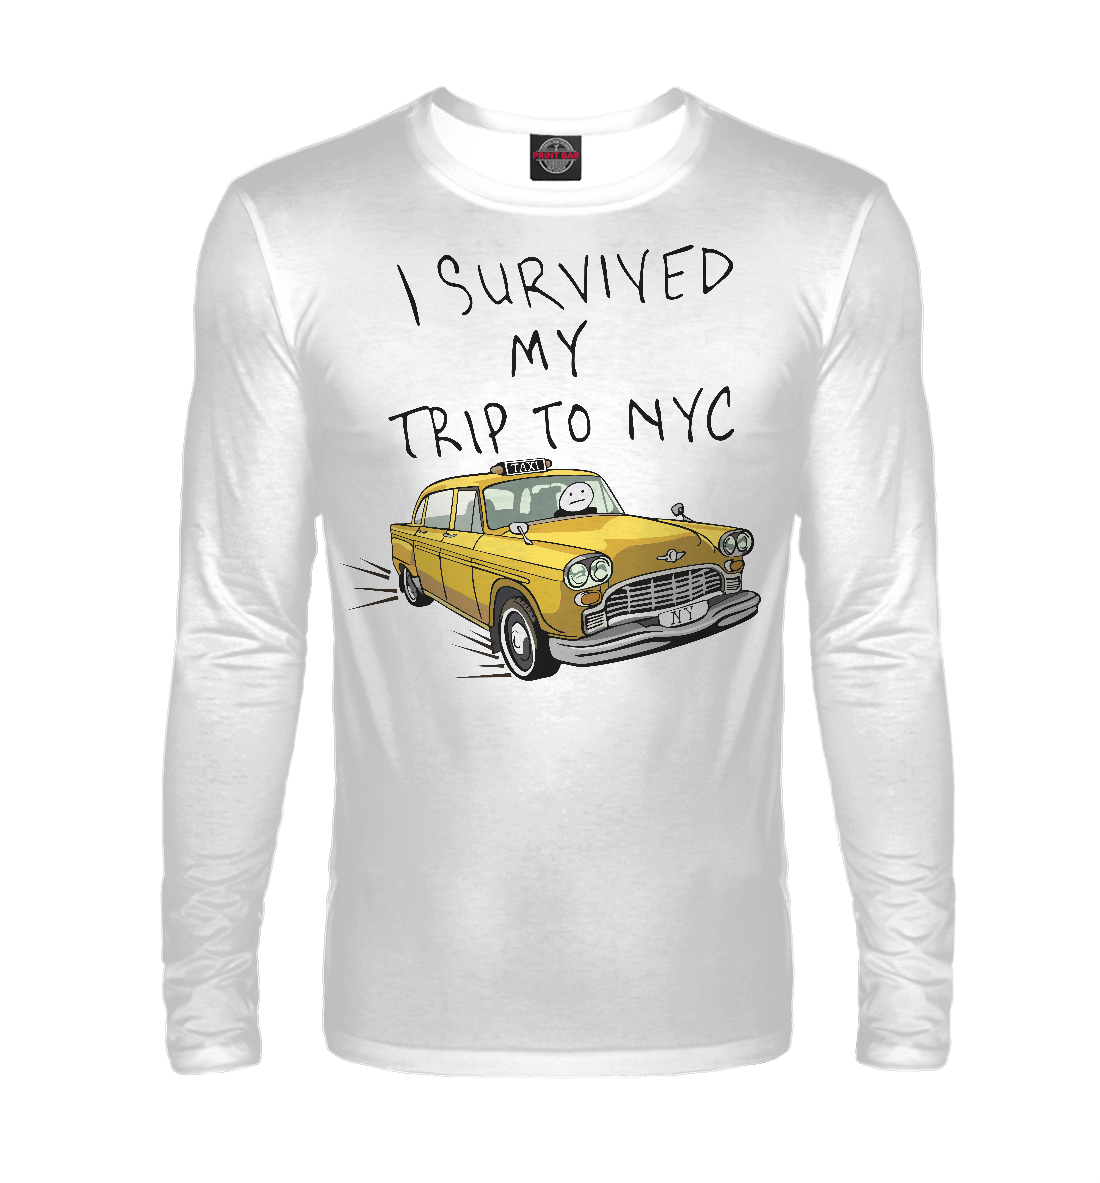 I survived my trip to NY city